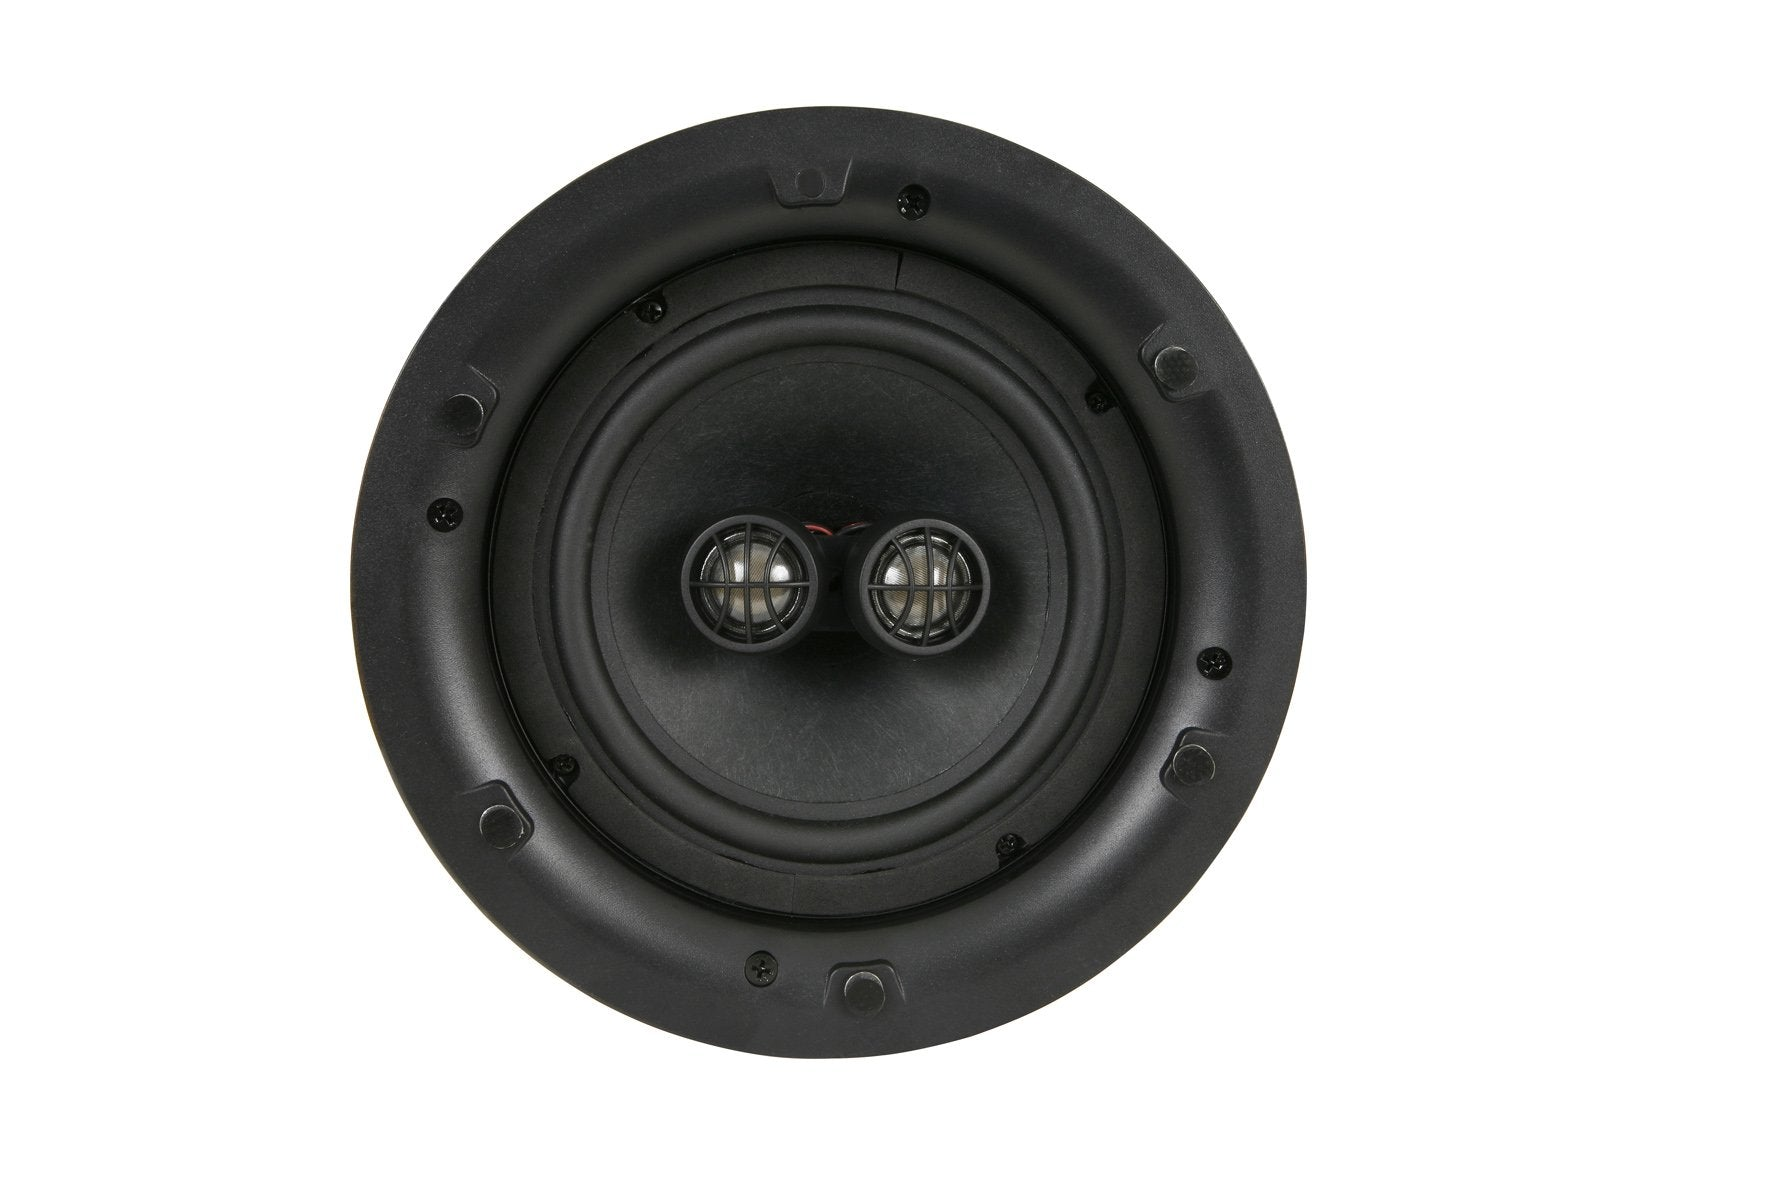 DLS IC646 - Single stereo In ceiling speaker - Single